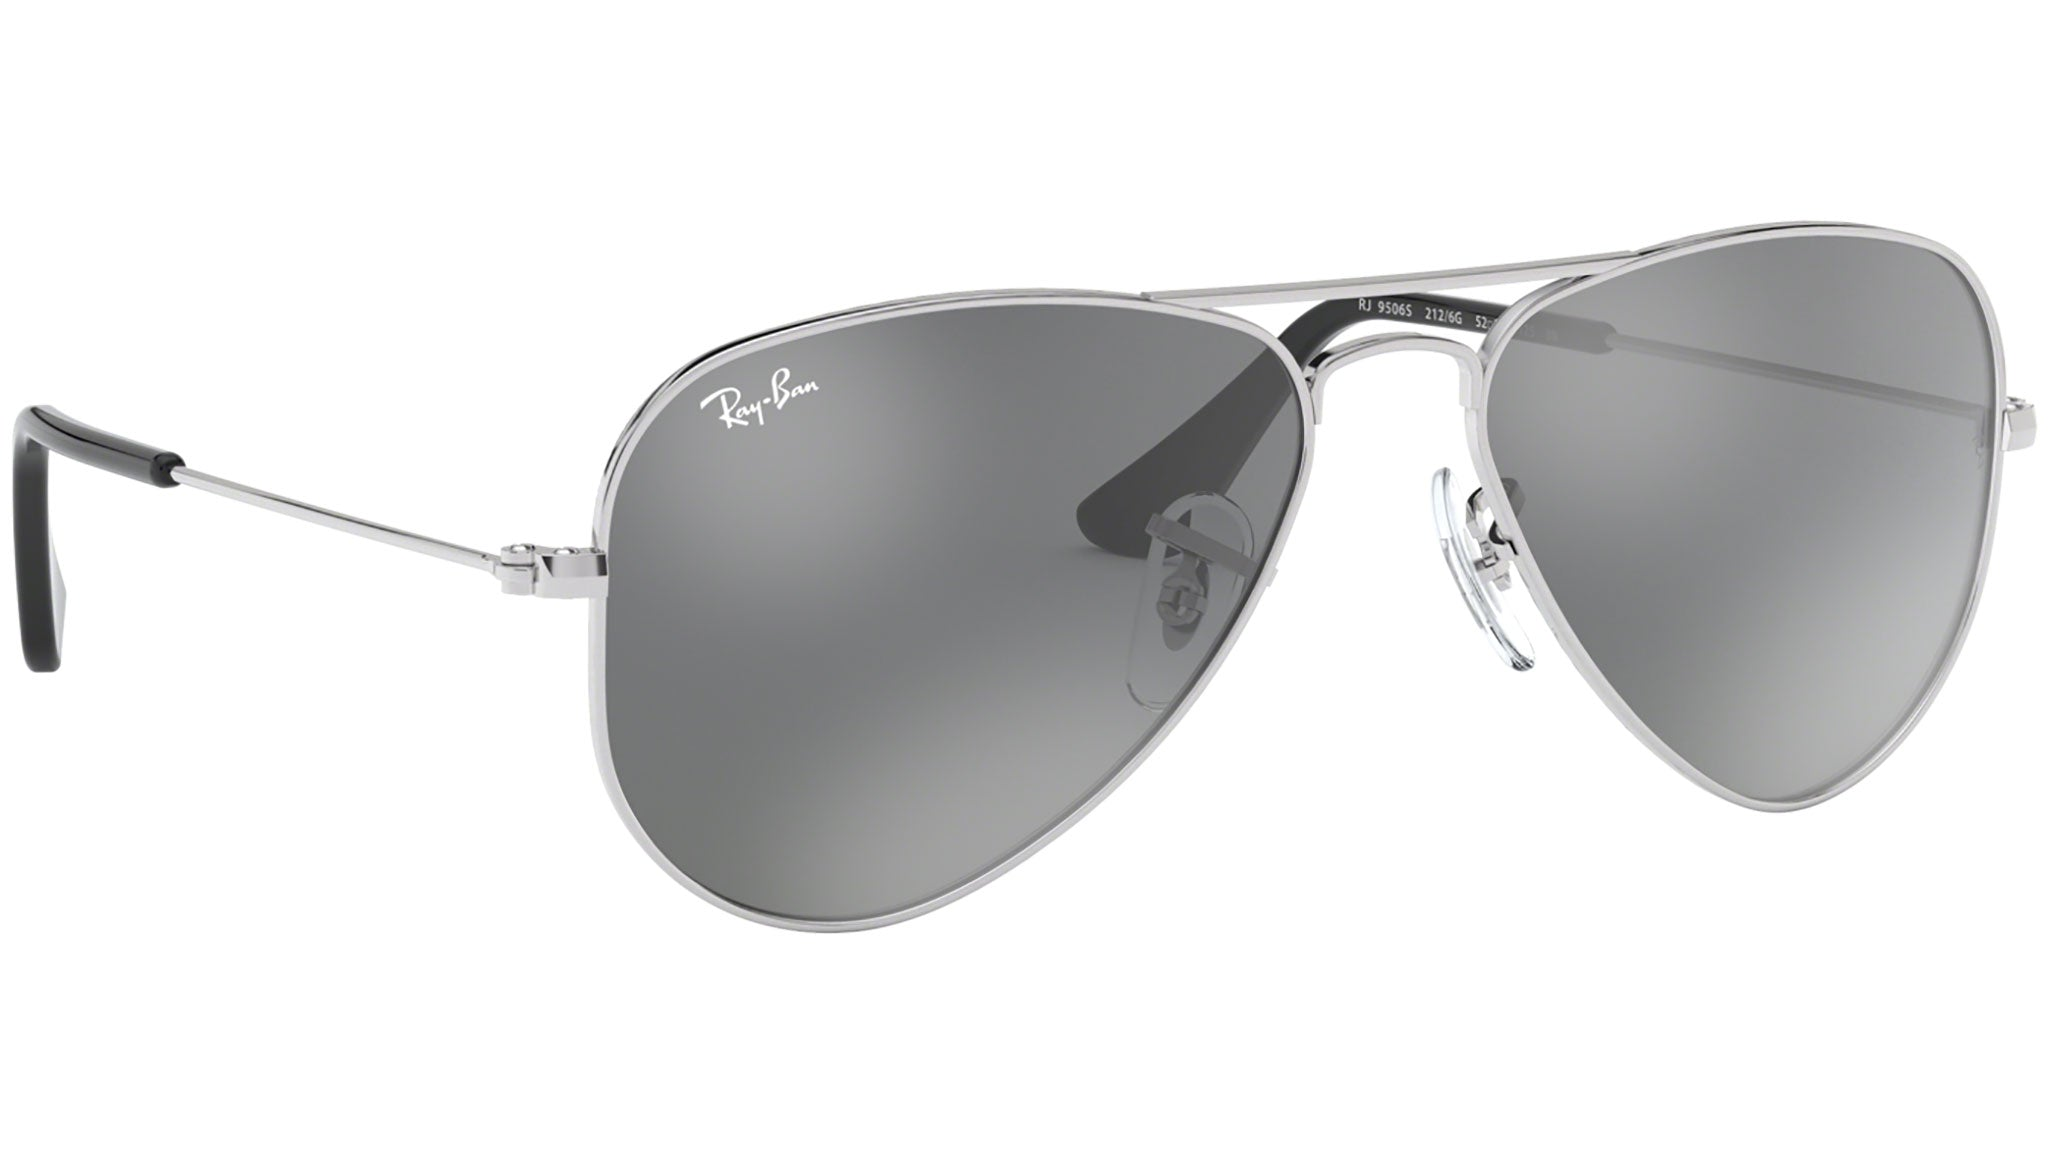 Junior Aviator RJ9506S shiny silver